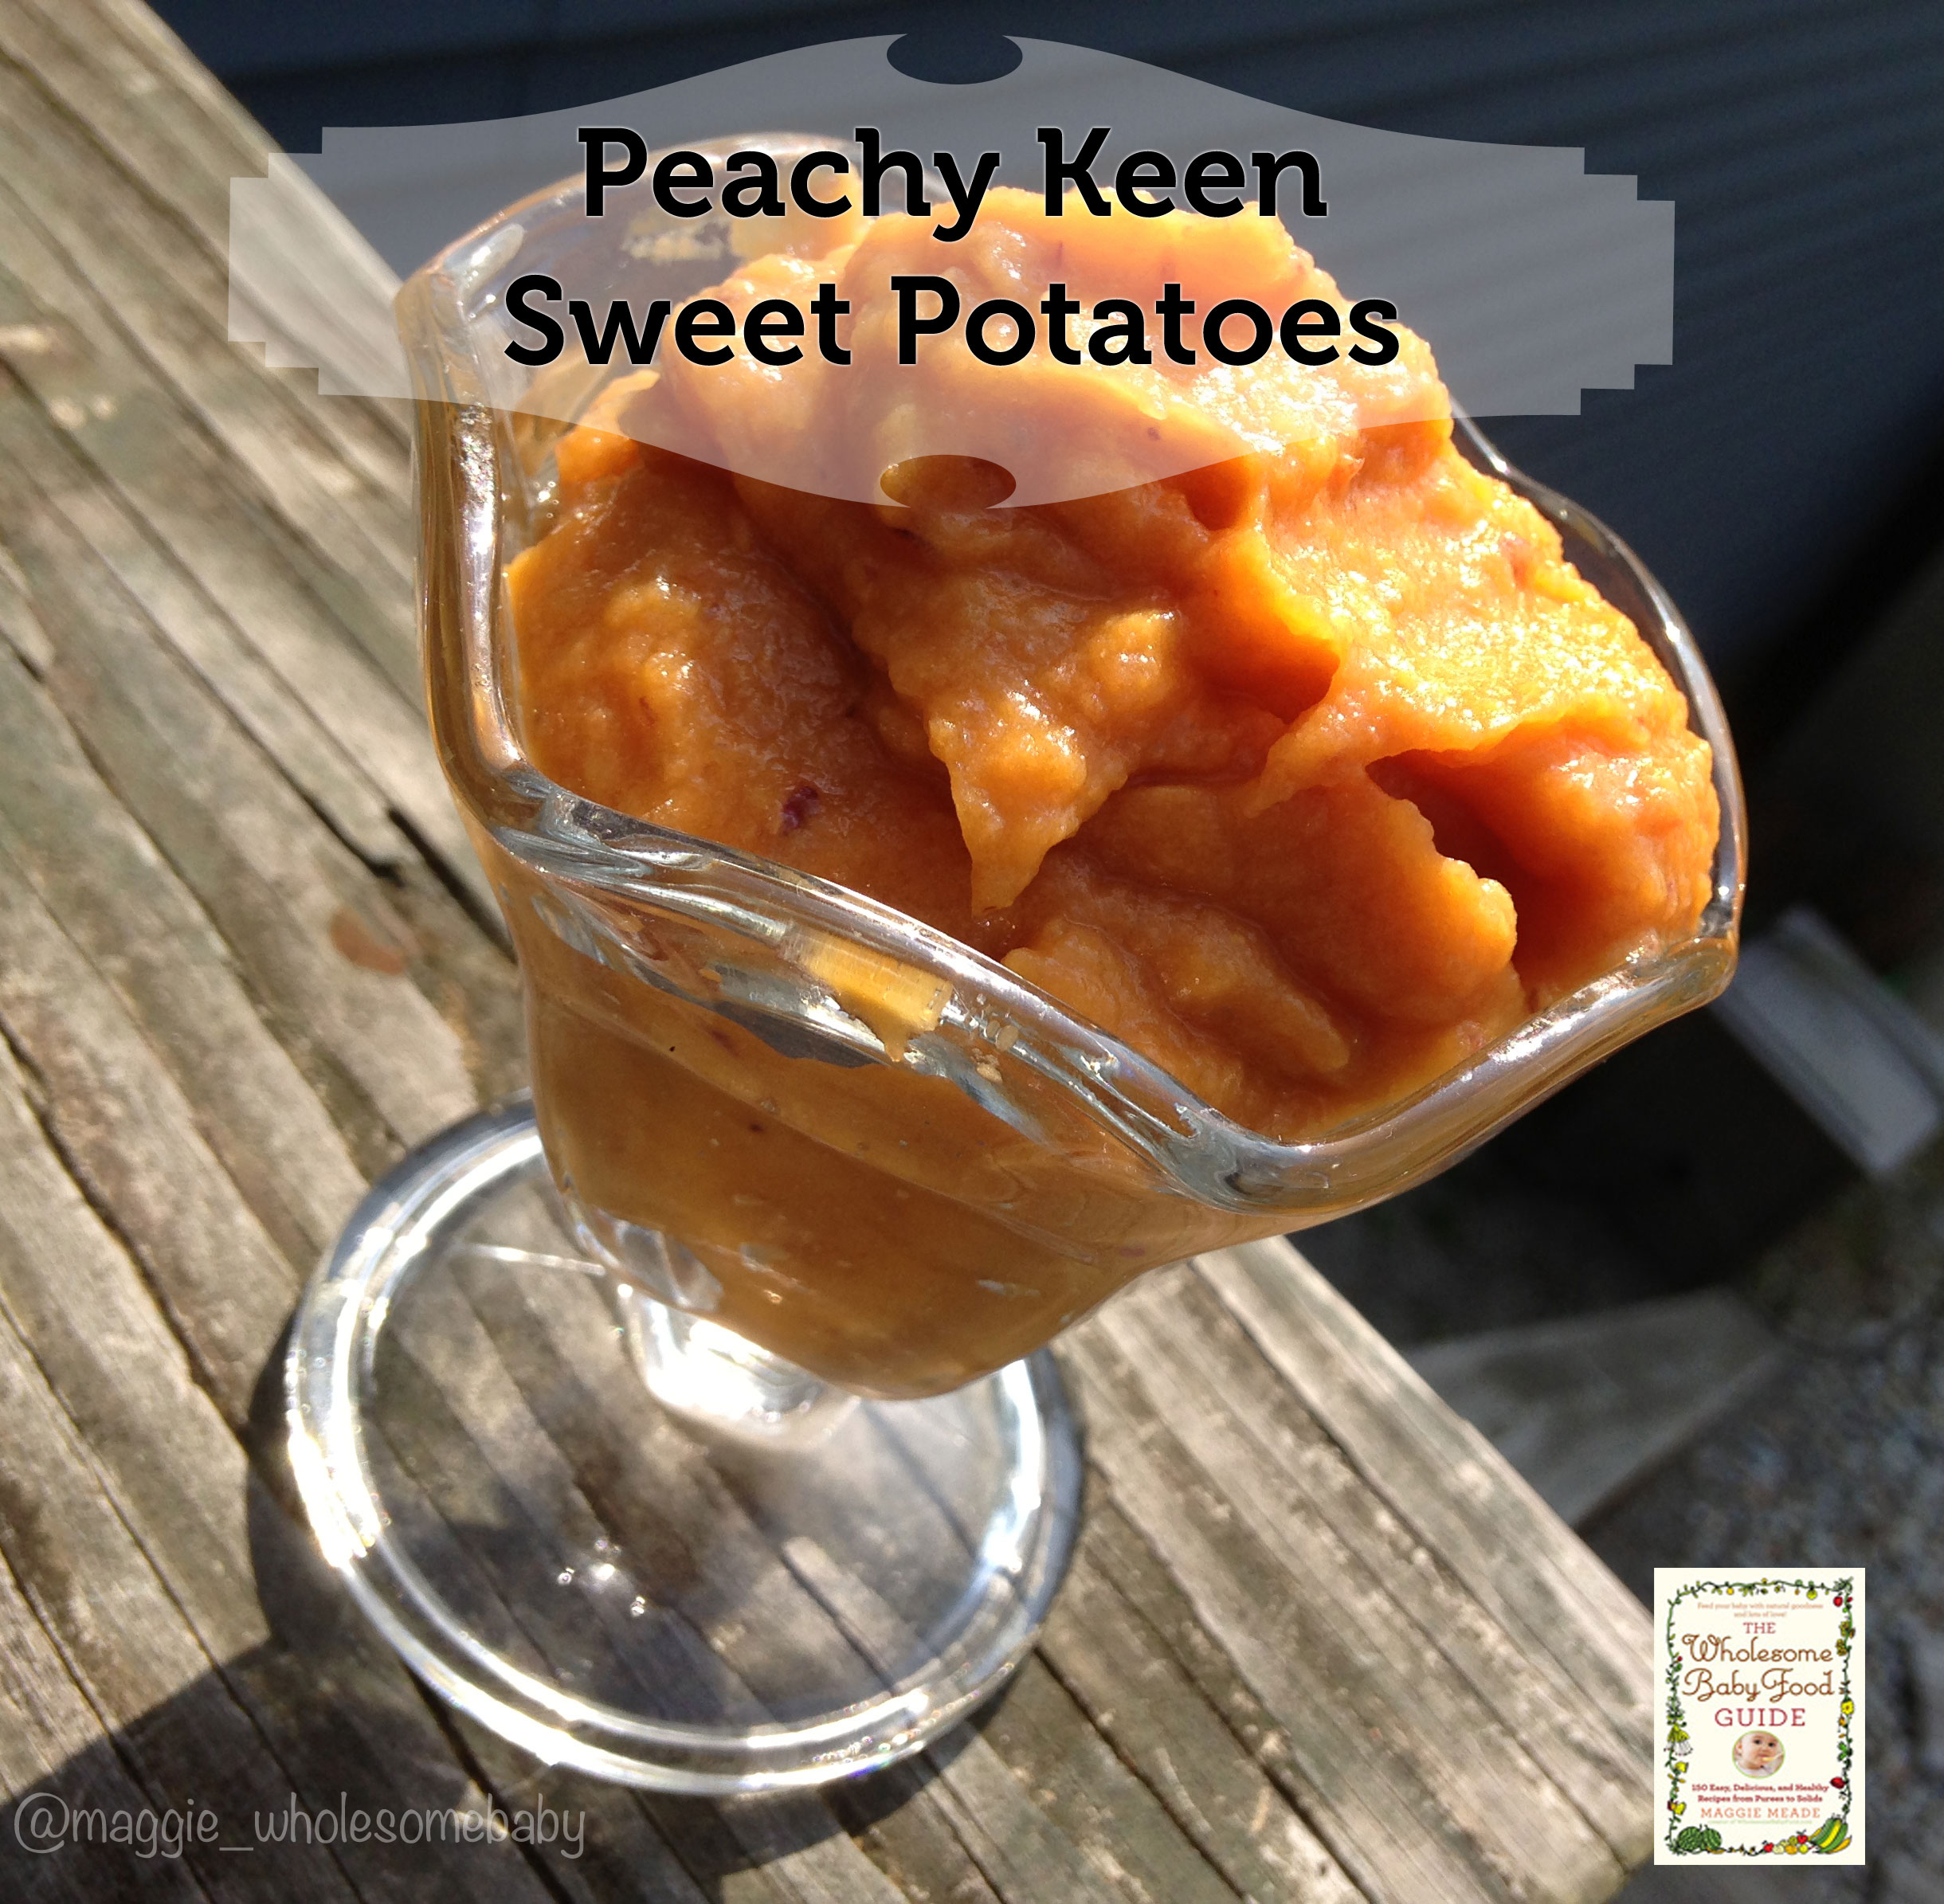 PeachyKeenSweetPotatoes